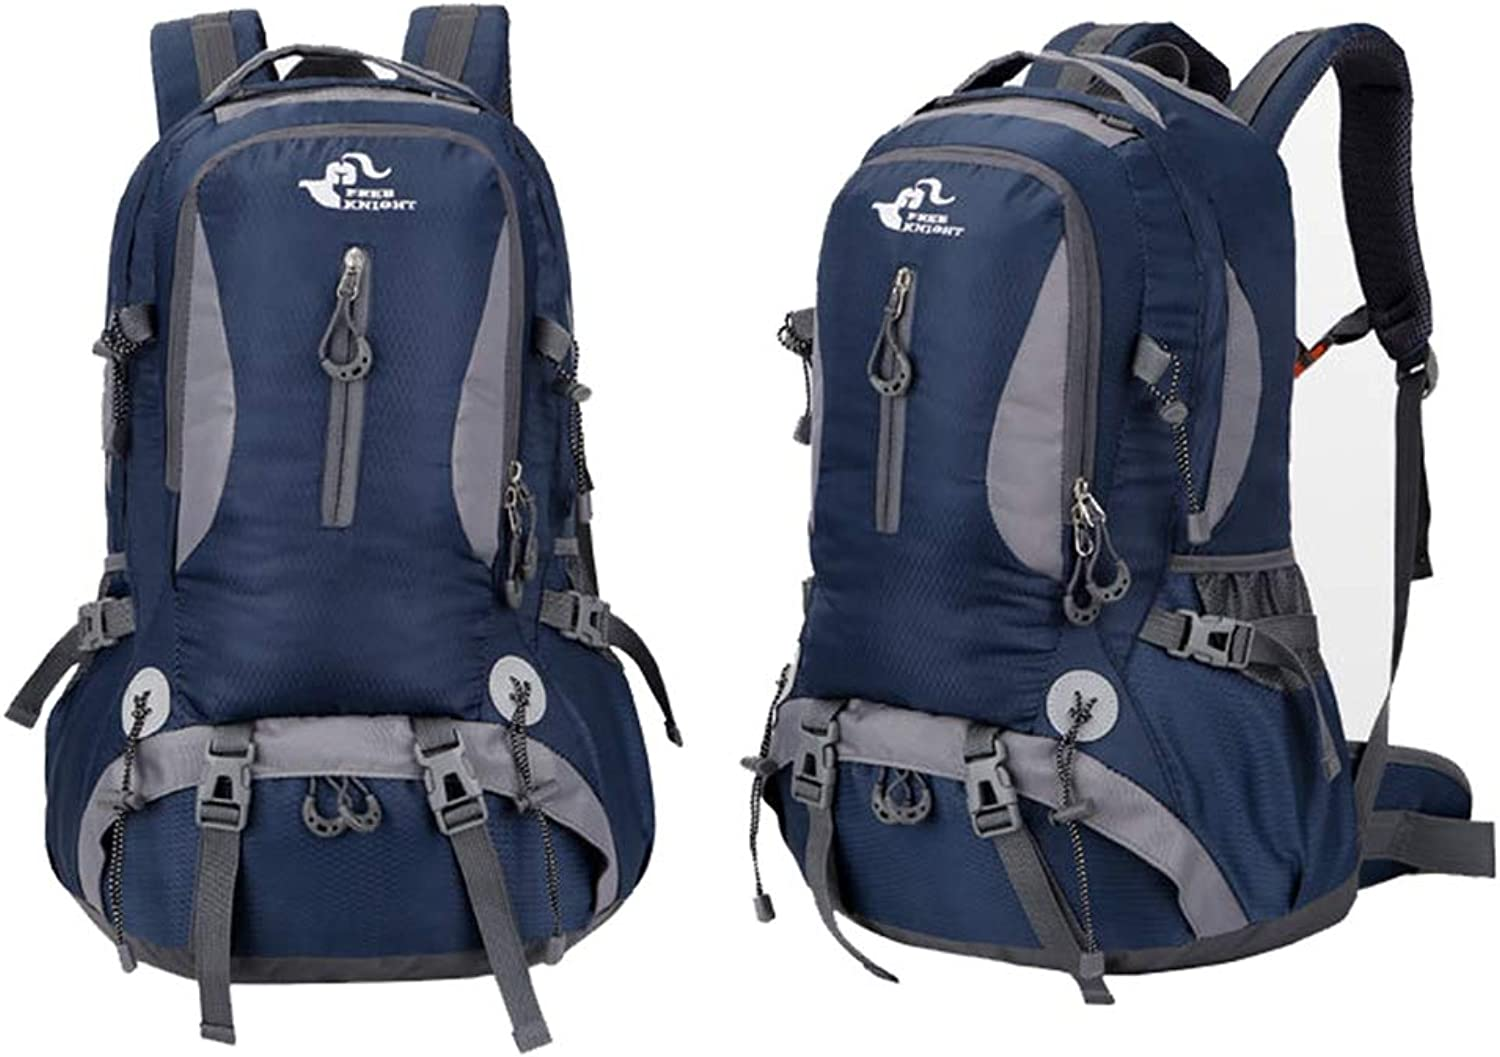 40L Hiking Waterproof Backpack for Backpacking, Hiking, Camping, and Travel Rucksack